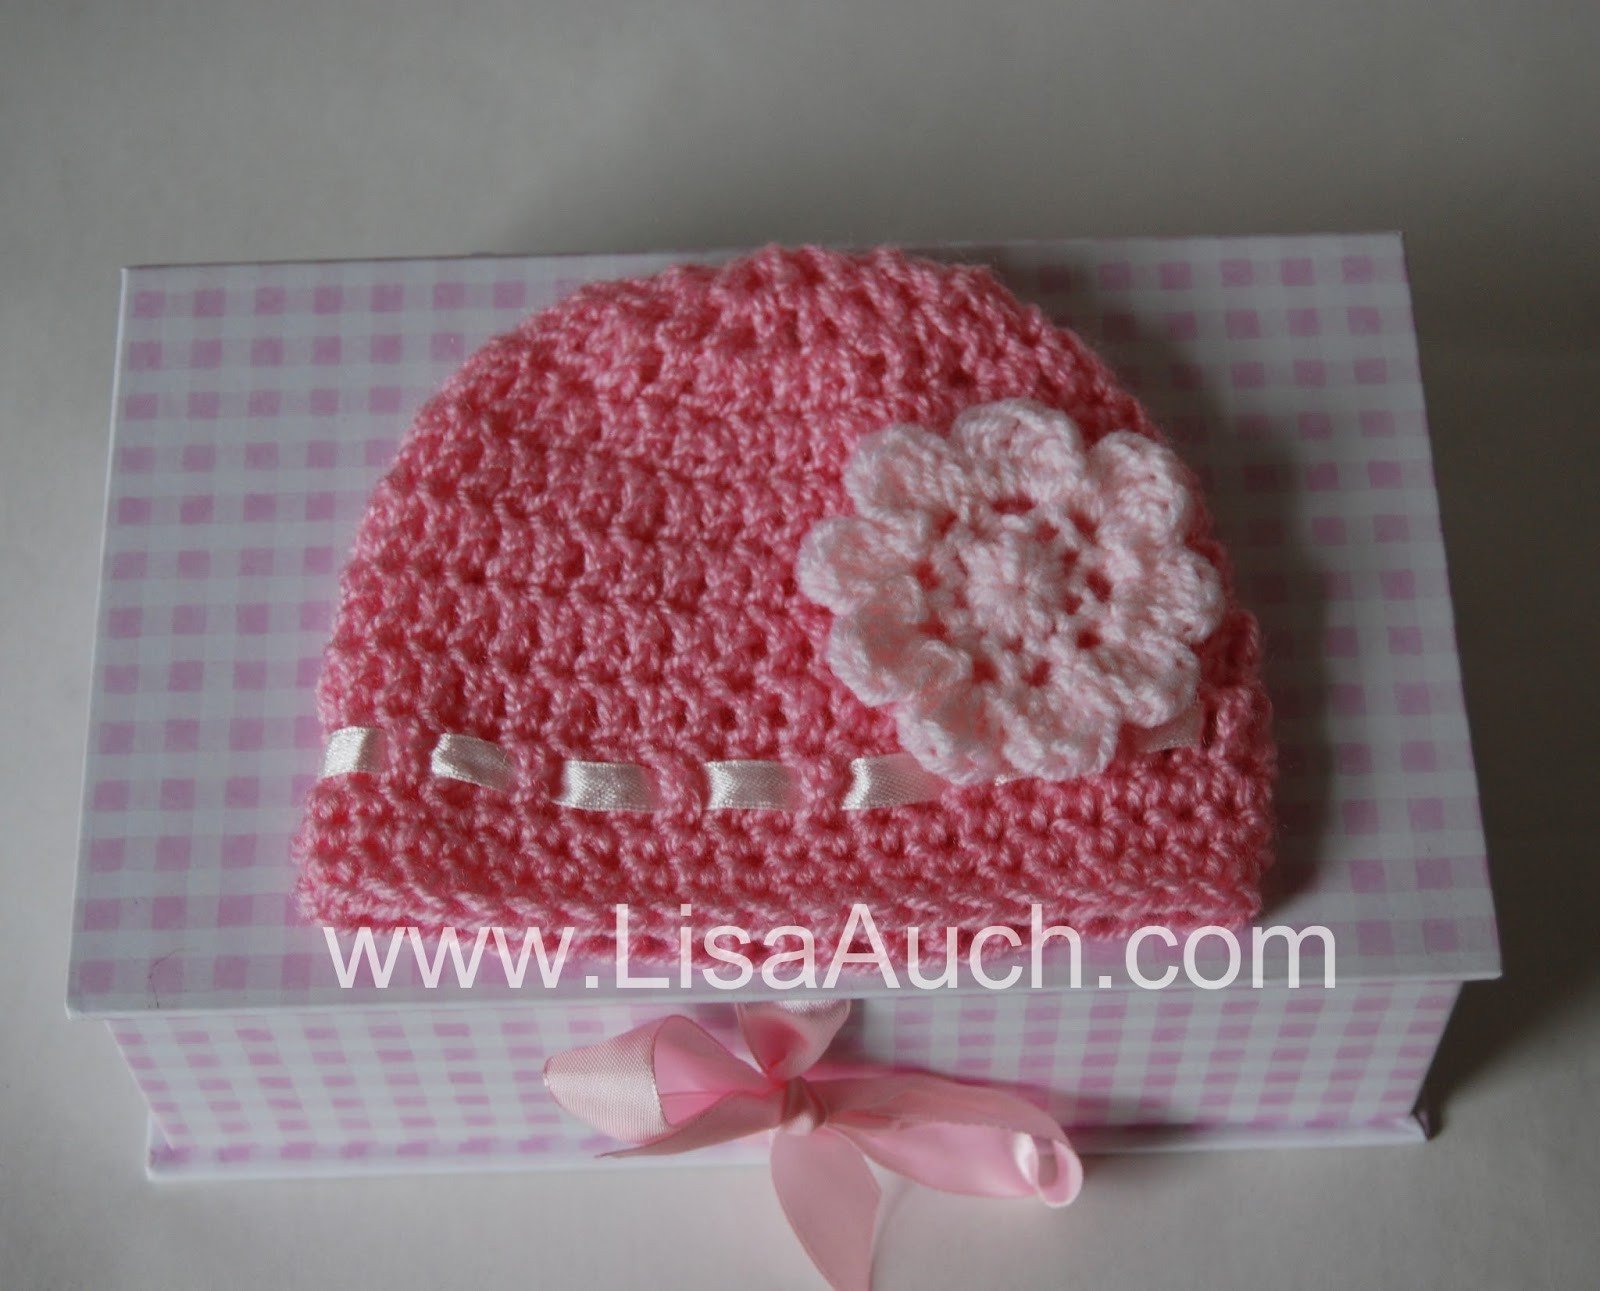 Crochet Patterns Of Baby Hats : Free Crochet Baby Hat Pattern